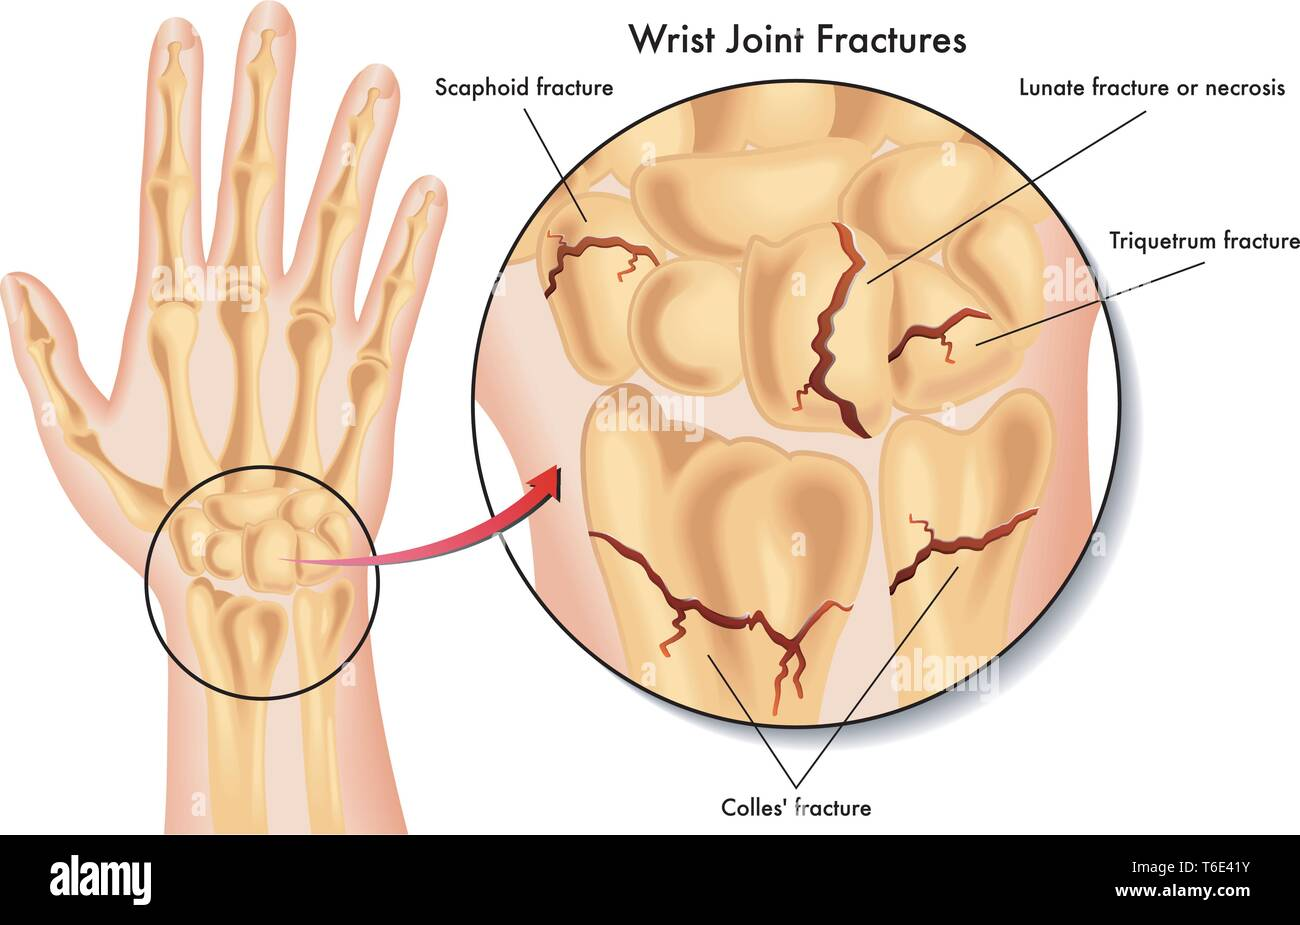 Medical illustration of the various kinds of fracture of the wrist - Stock Image